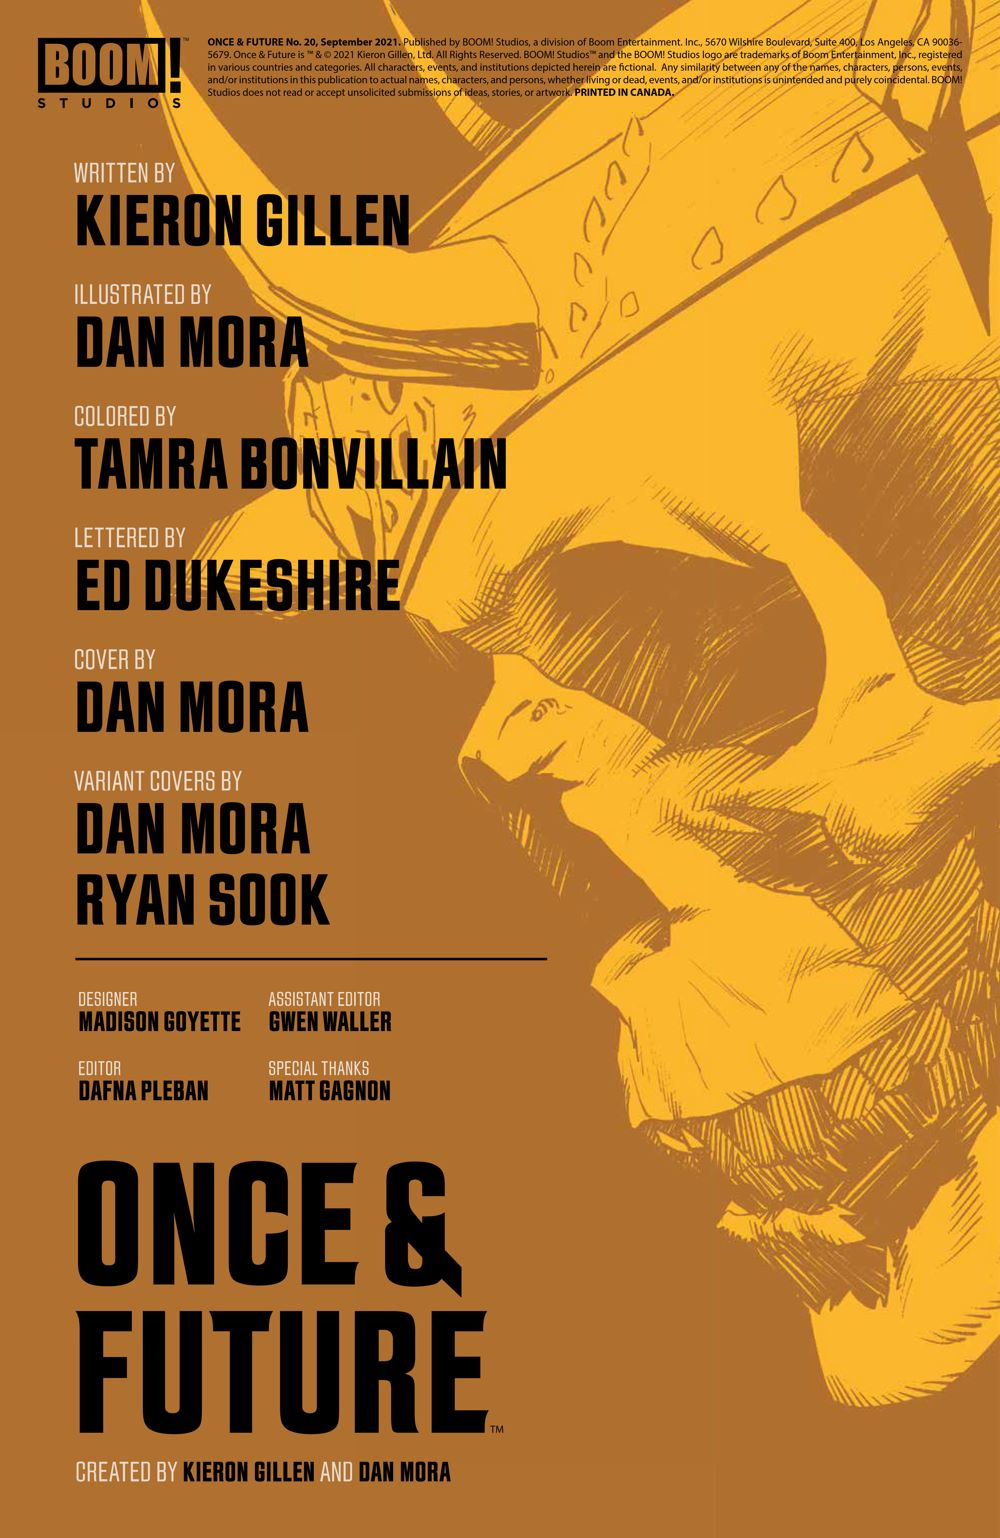 OnceFuture_020_PRESS_2 ComicList Previews: ONCE AND FUTURE #20